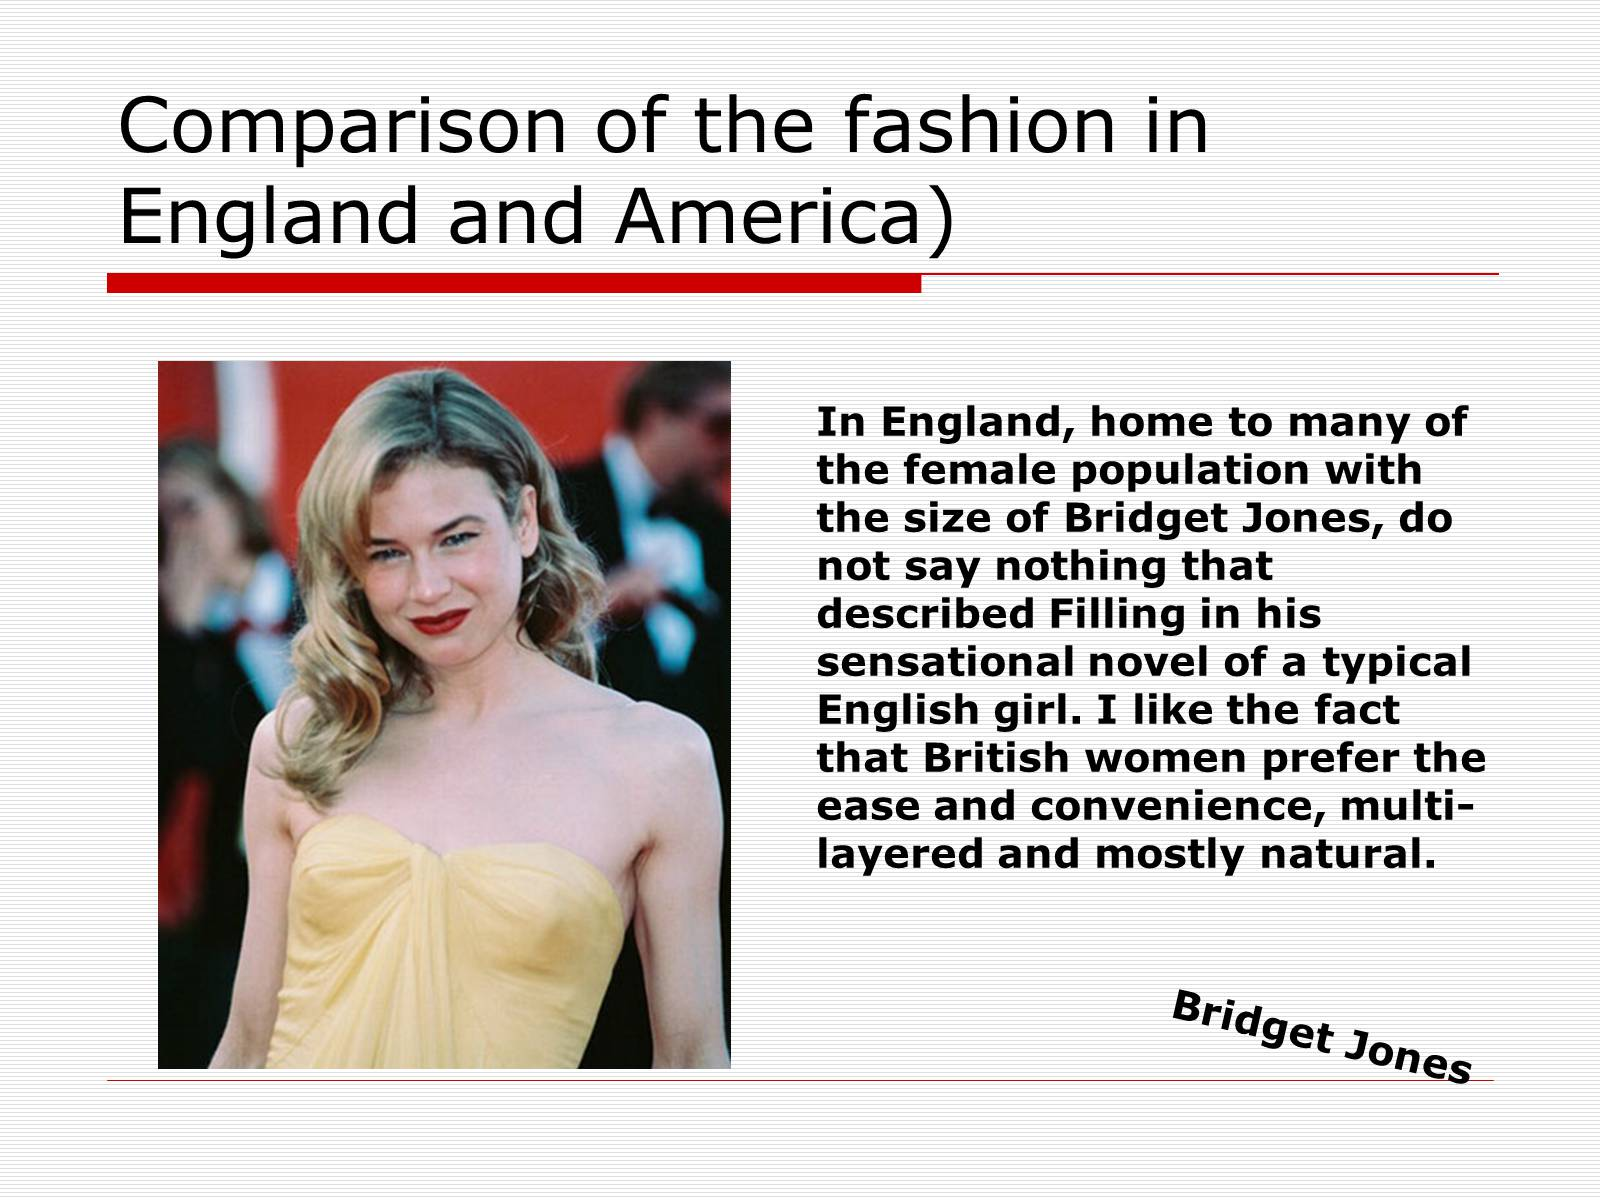 Презентація на тему «Comparison of the fashion in England and America» - Слайд #43